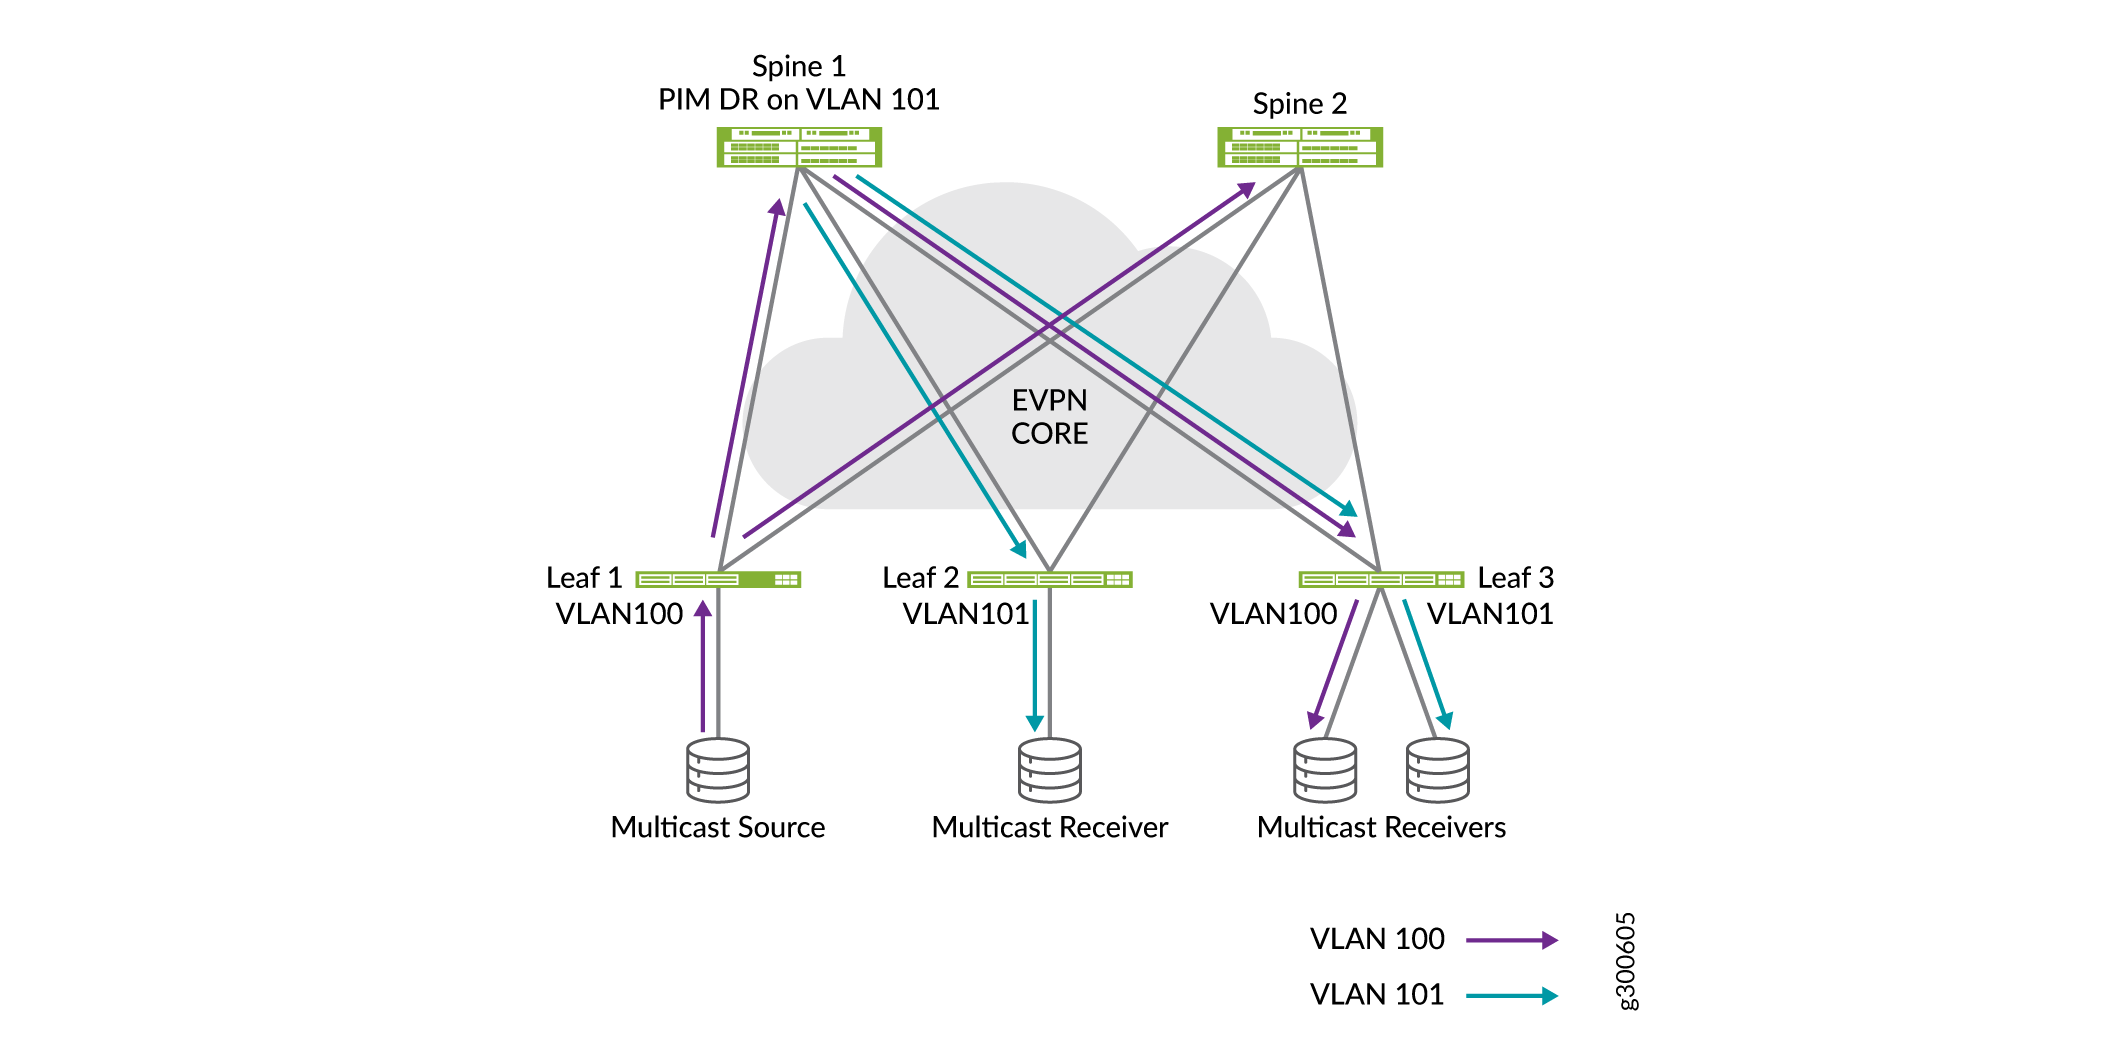 Inter-VLAN Multicast Traffic Flow with IRB Interface and PIM